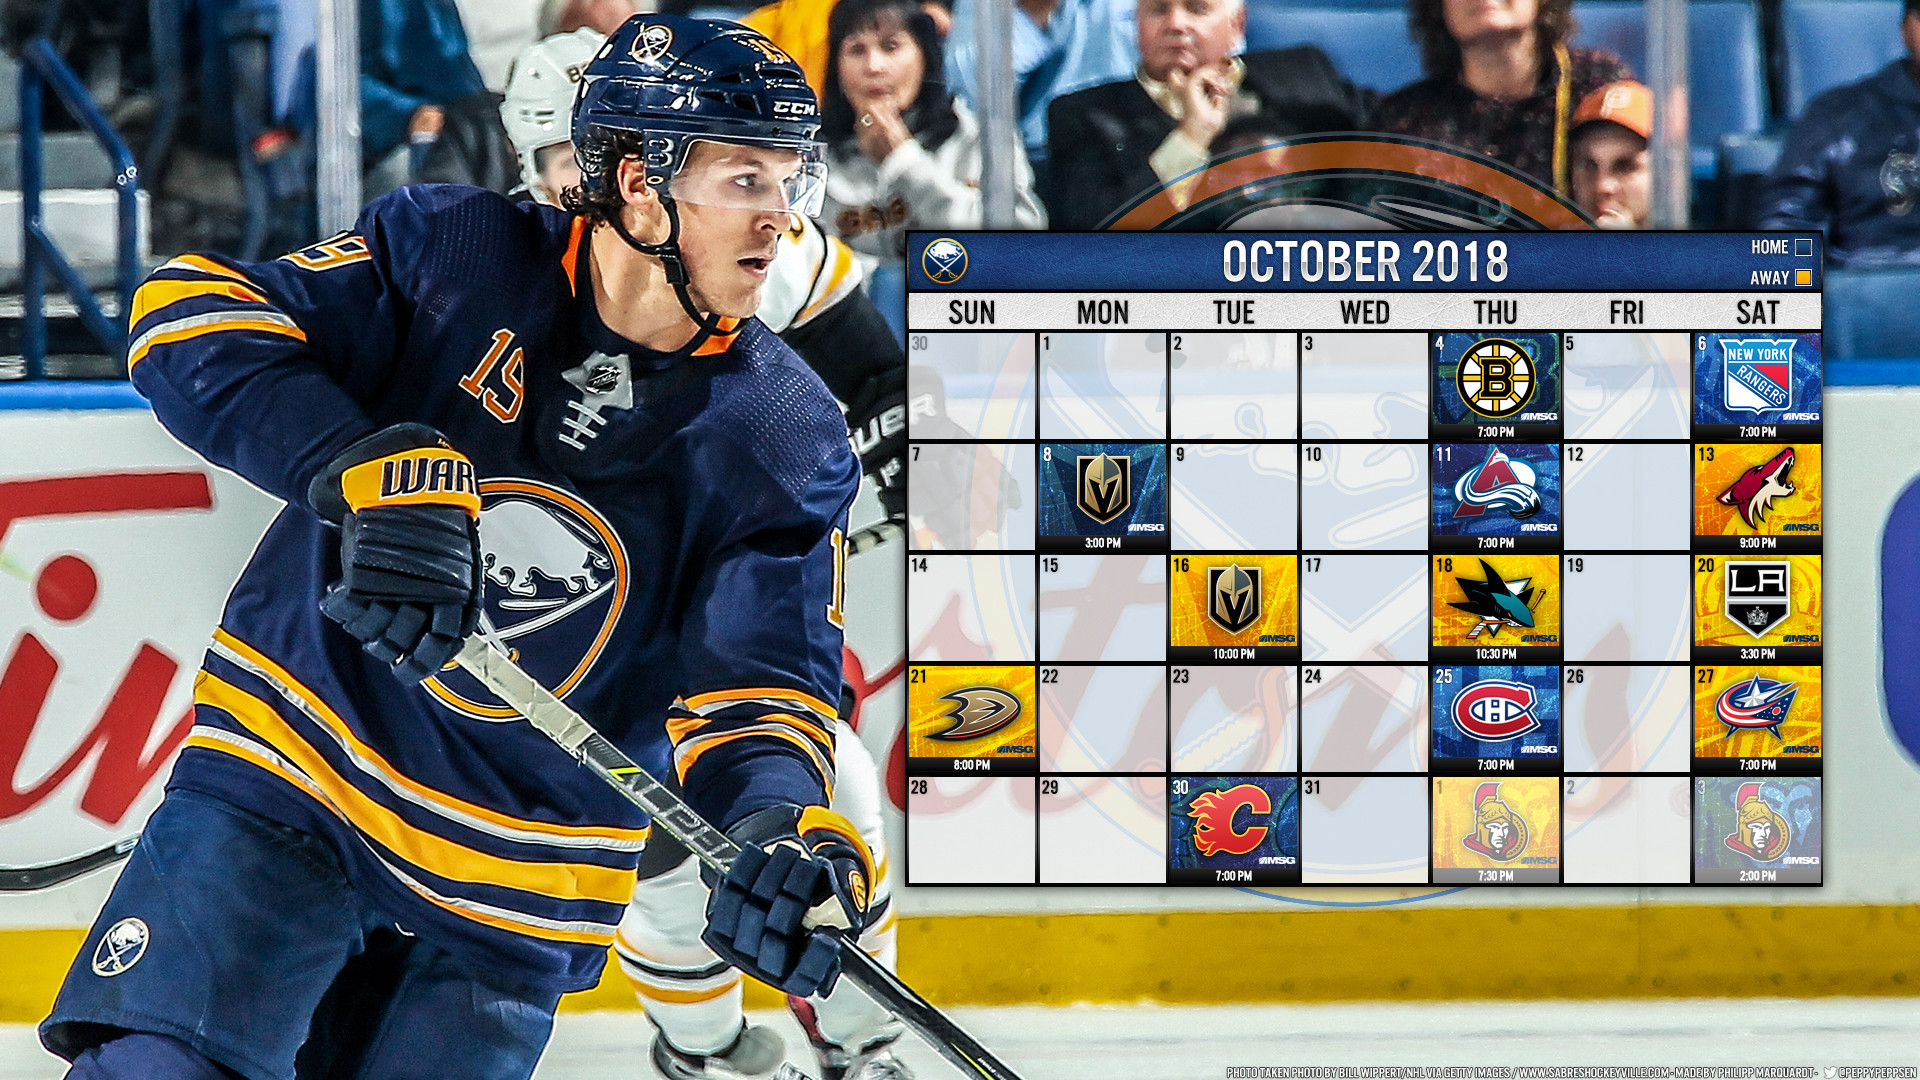 1920x1080 October 2018 featuring Jake McCabe: